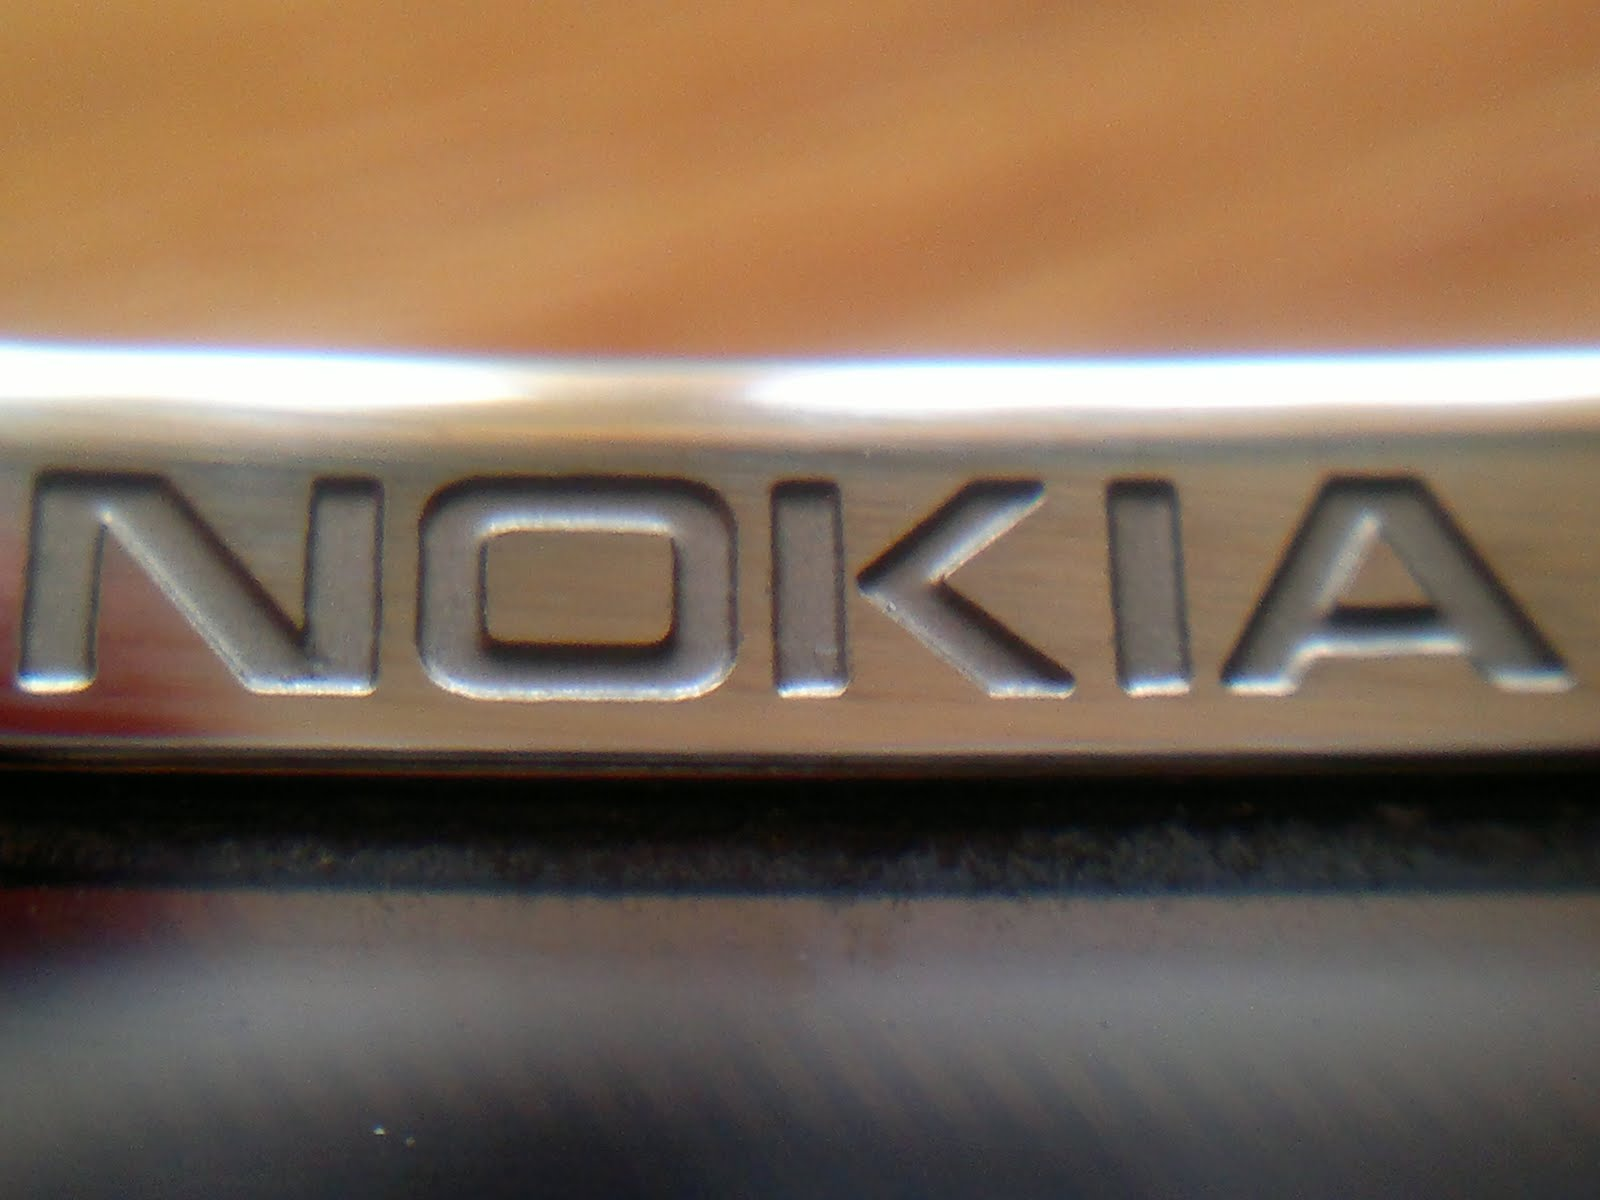 Nokia to cut 3500 jobs worldwide in strategic and cost-cutting shift